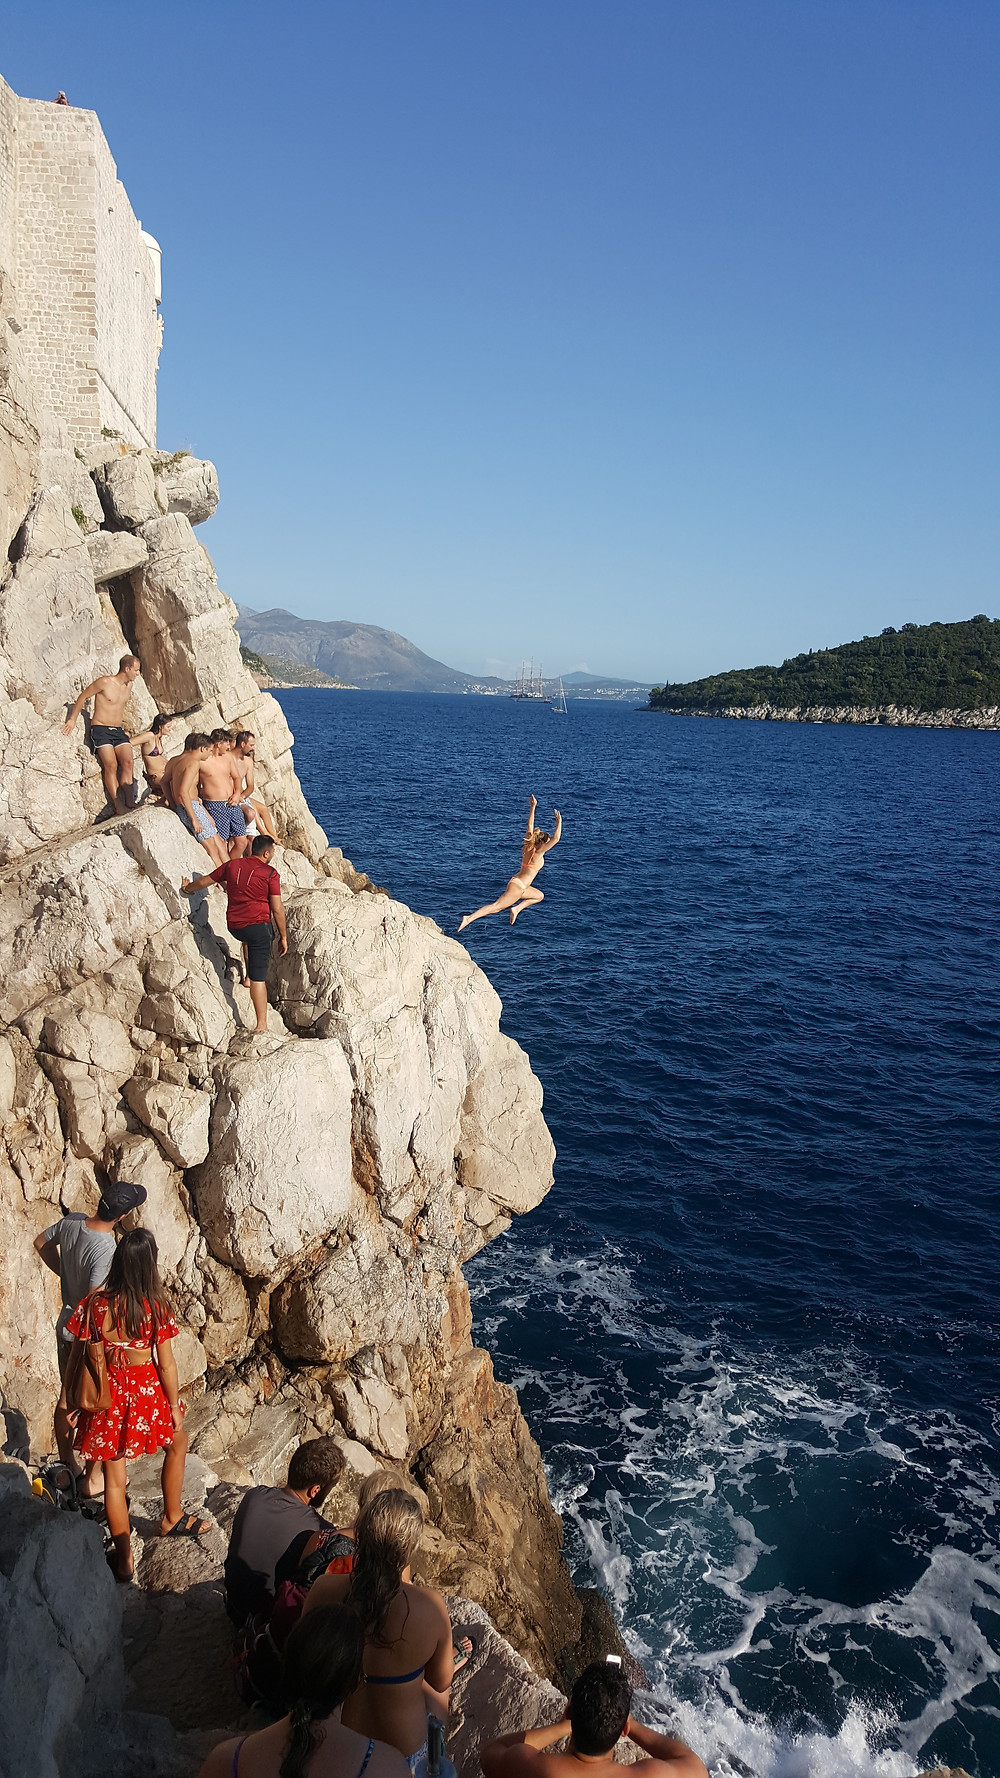 Cliff jumping in Croatia - Life Itinerant